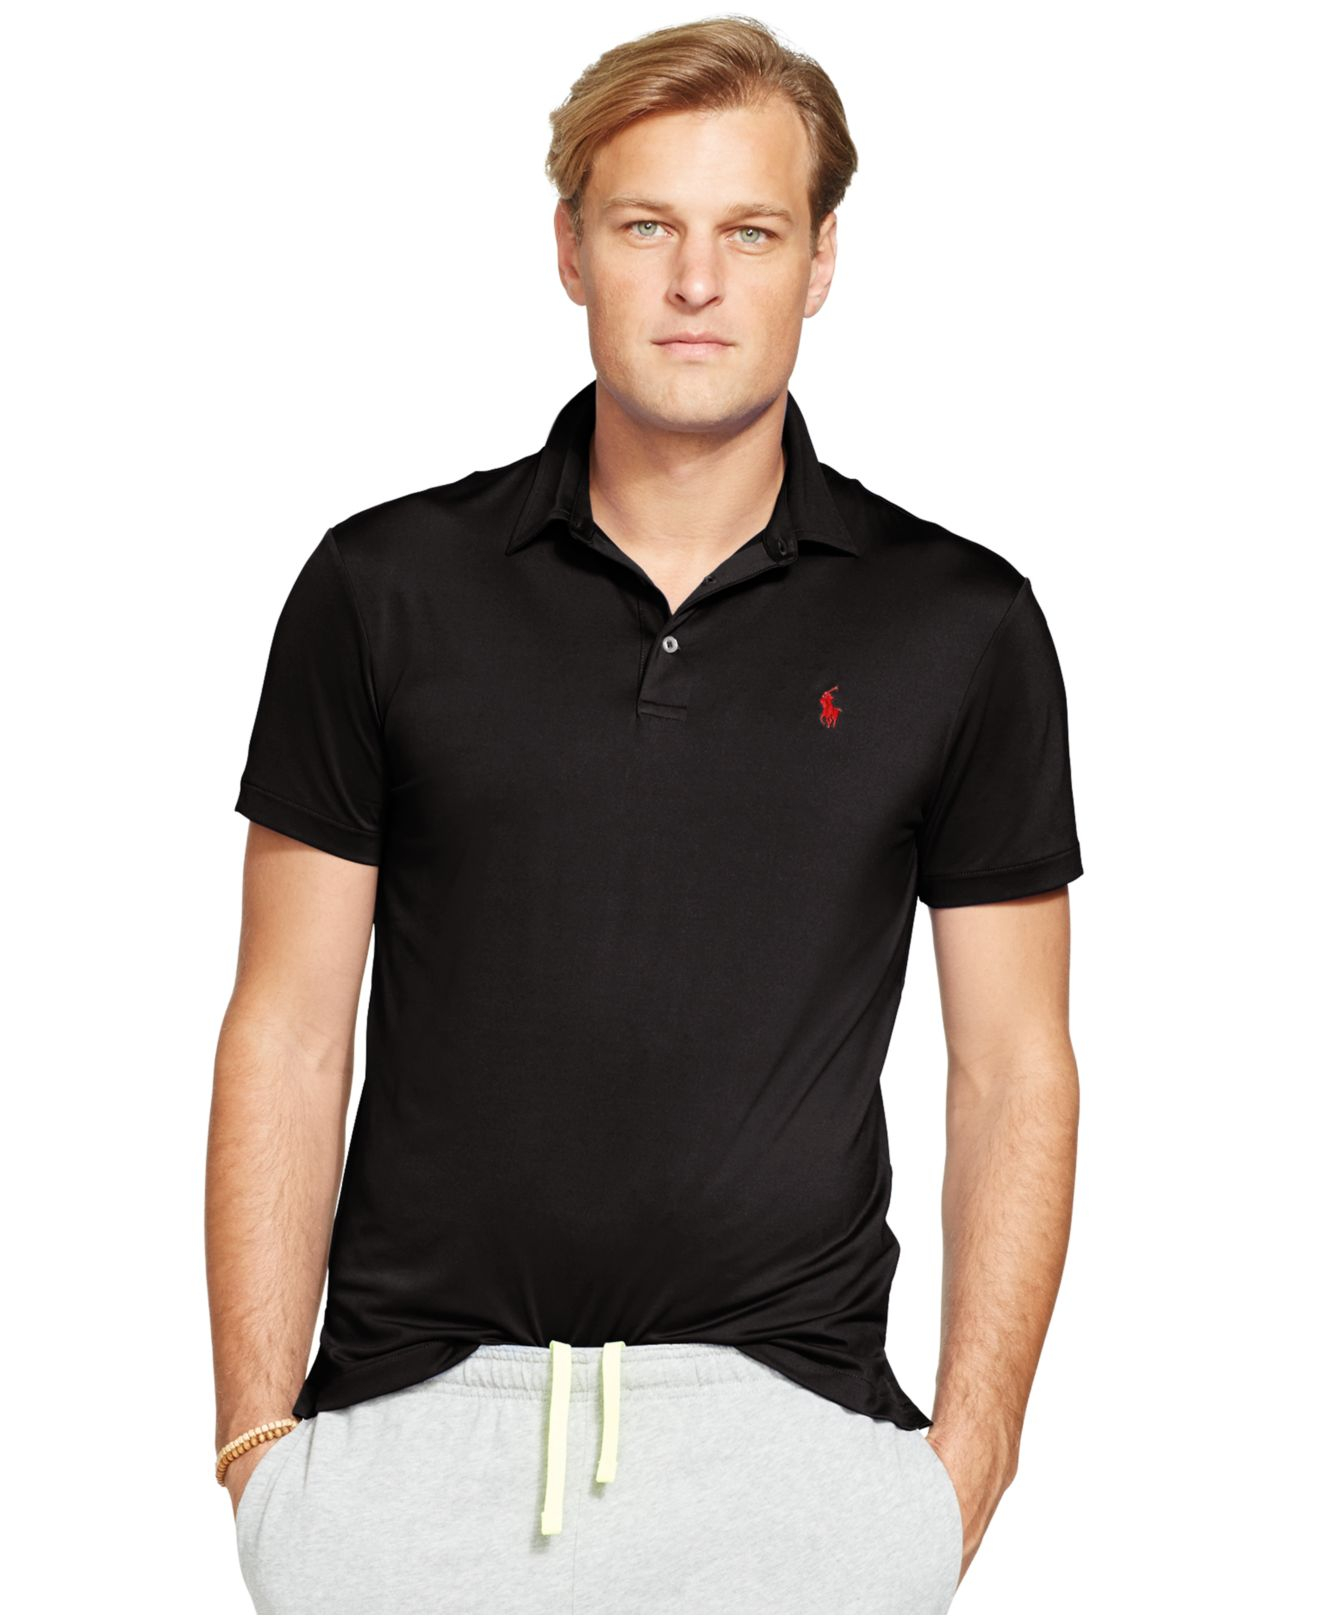 Lyst polo ralph lauren big tall performance polo shirt Man in polo shirt